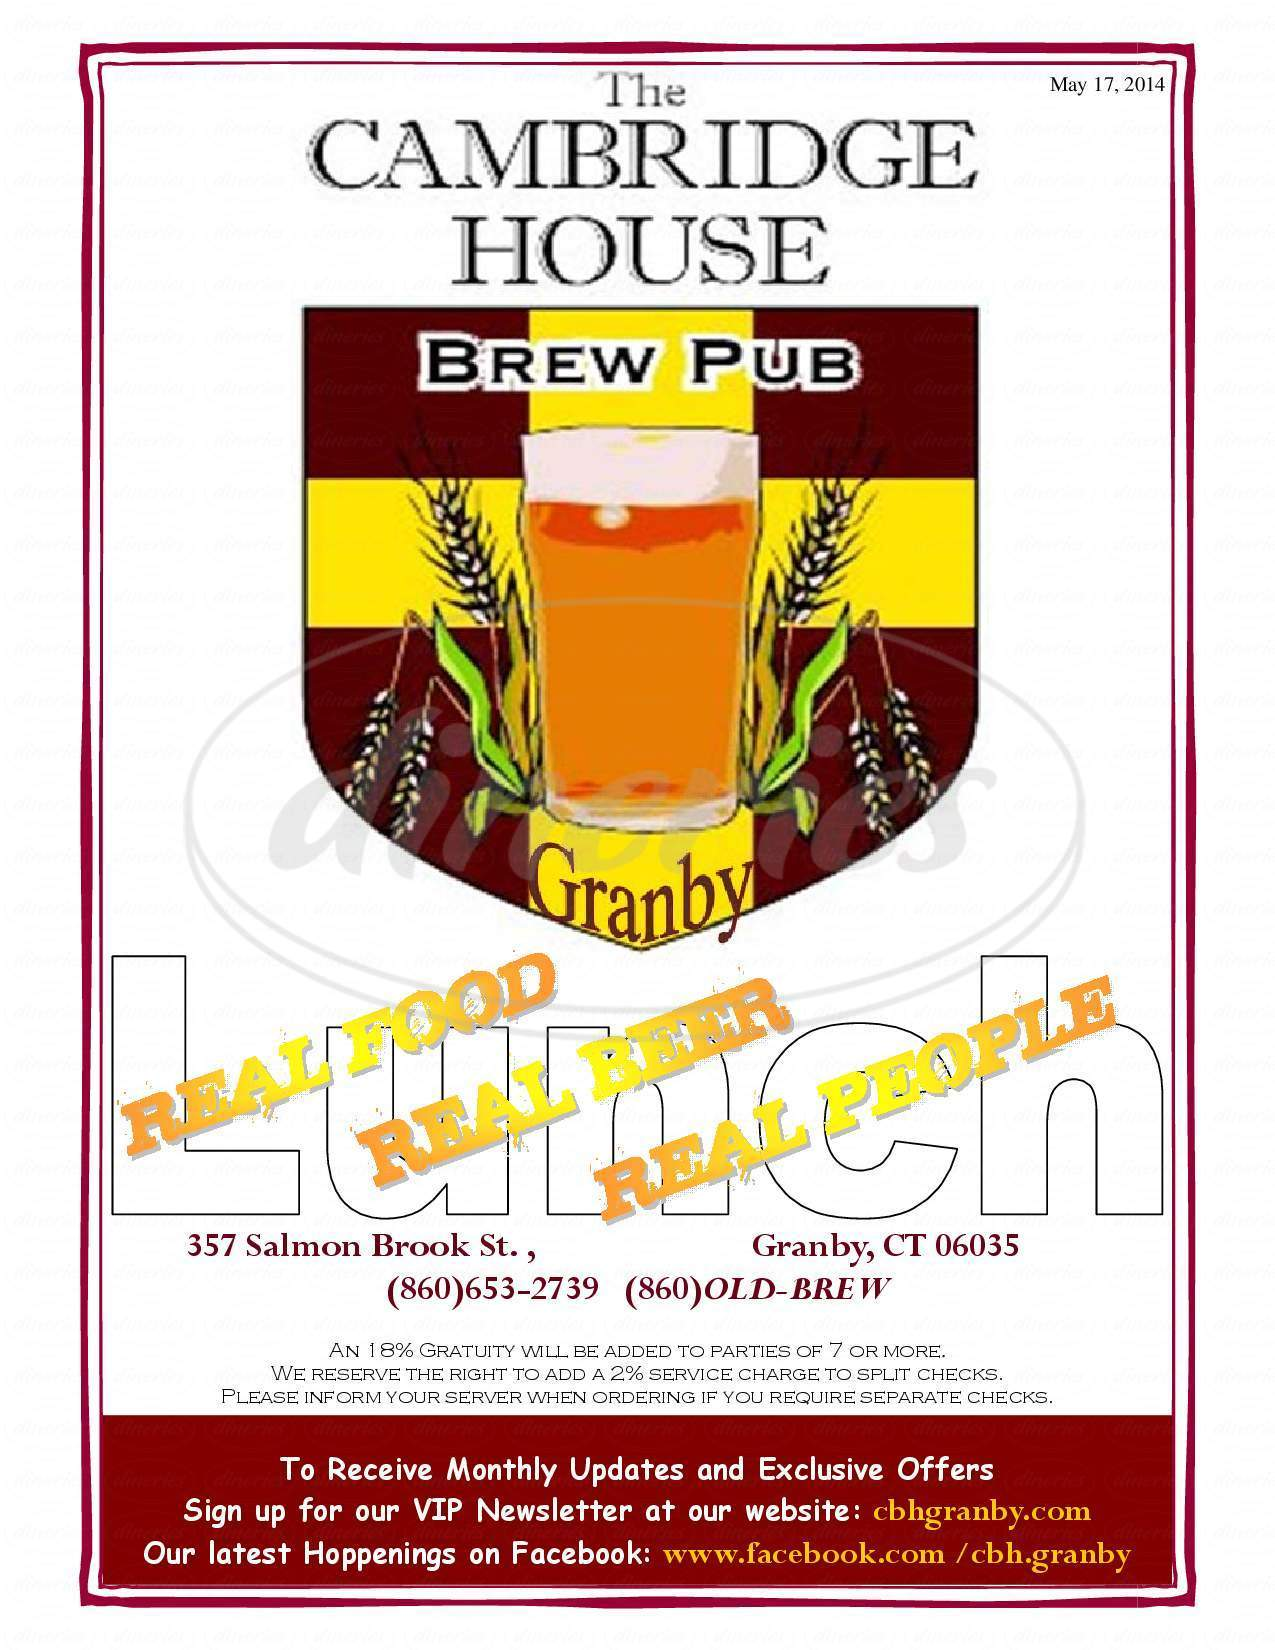 menu for The Cambridge House Brew Pub